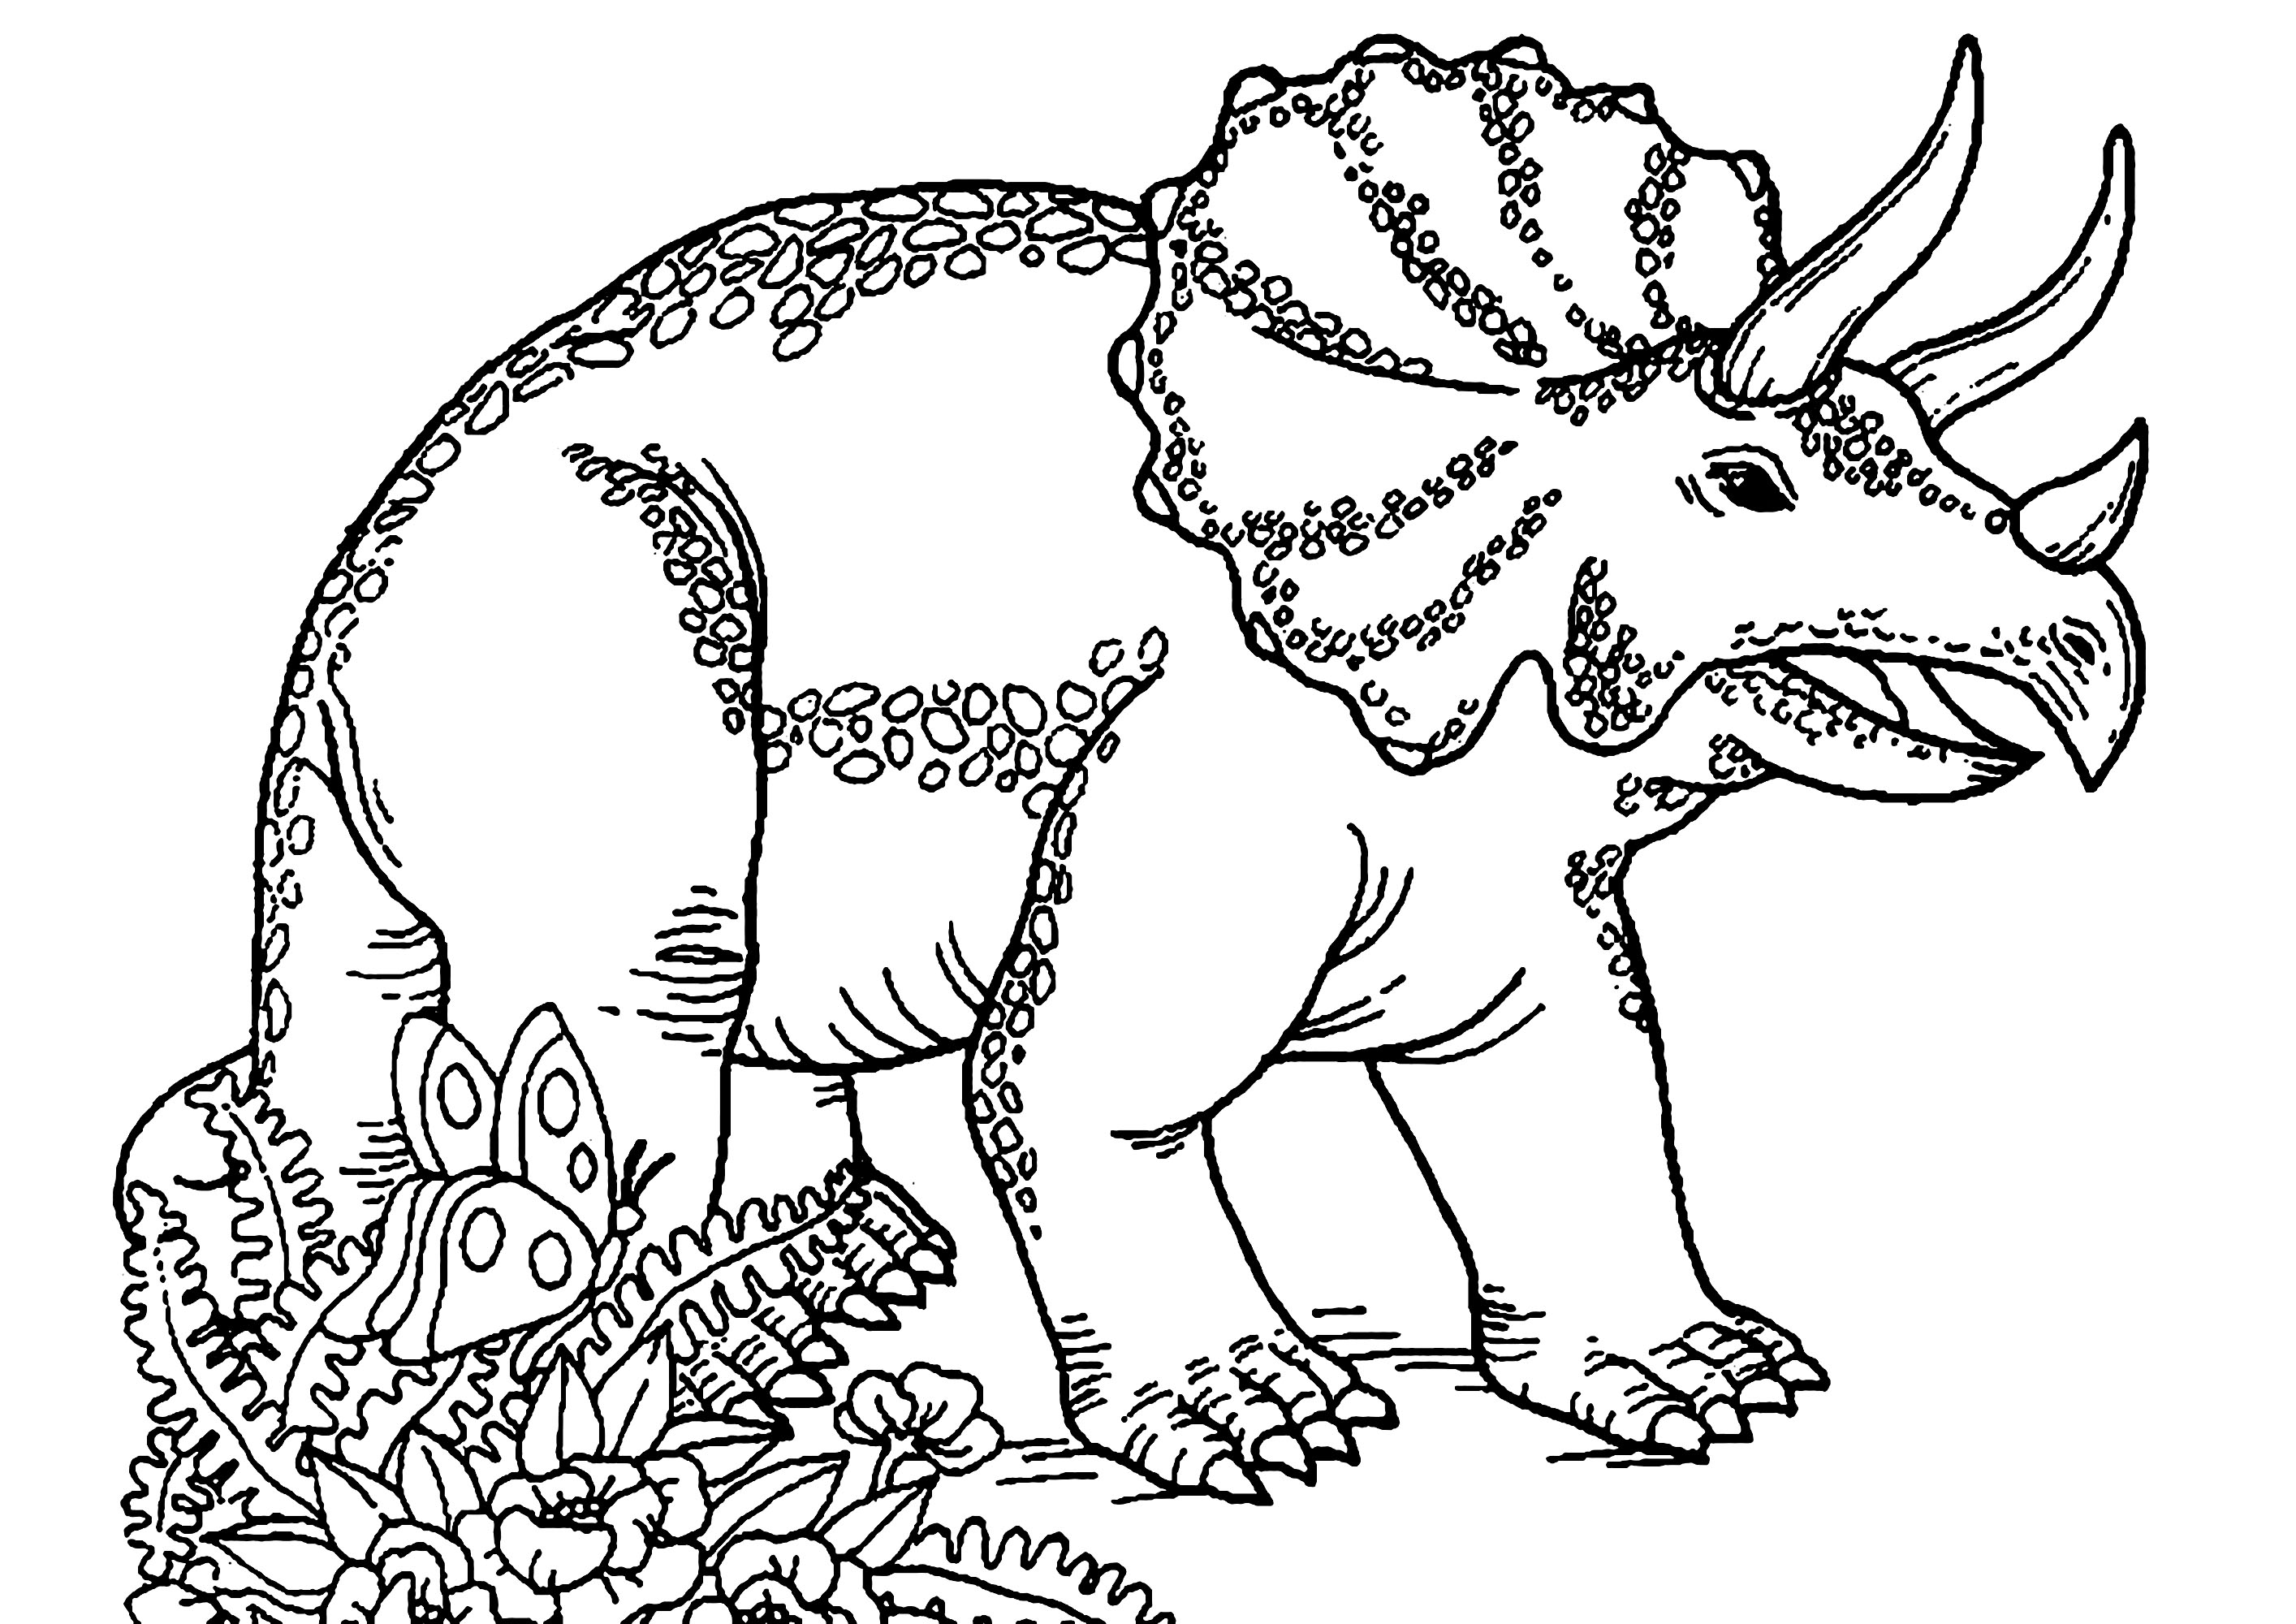 dinosaur coloring sheets preschool dinosaurs coloring pages for kindergarten elementary preschool sheets dinosaur coloring